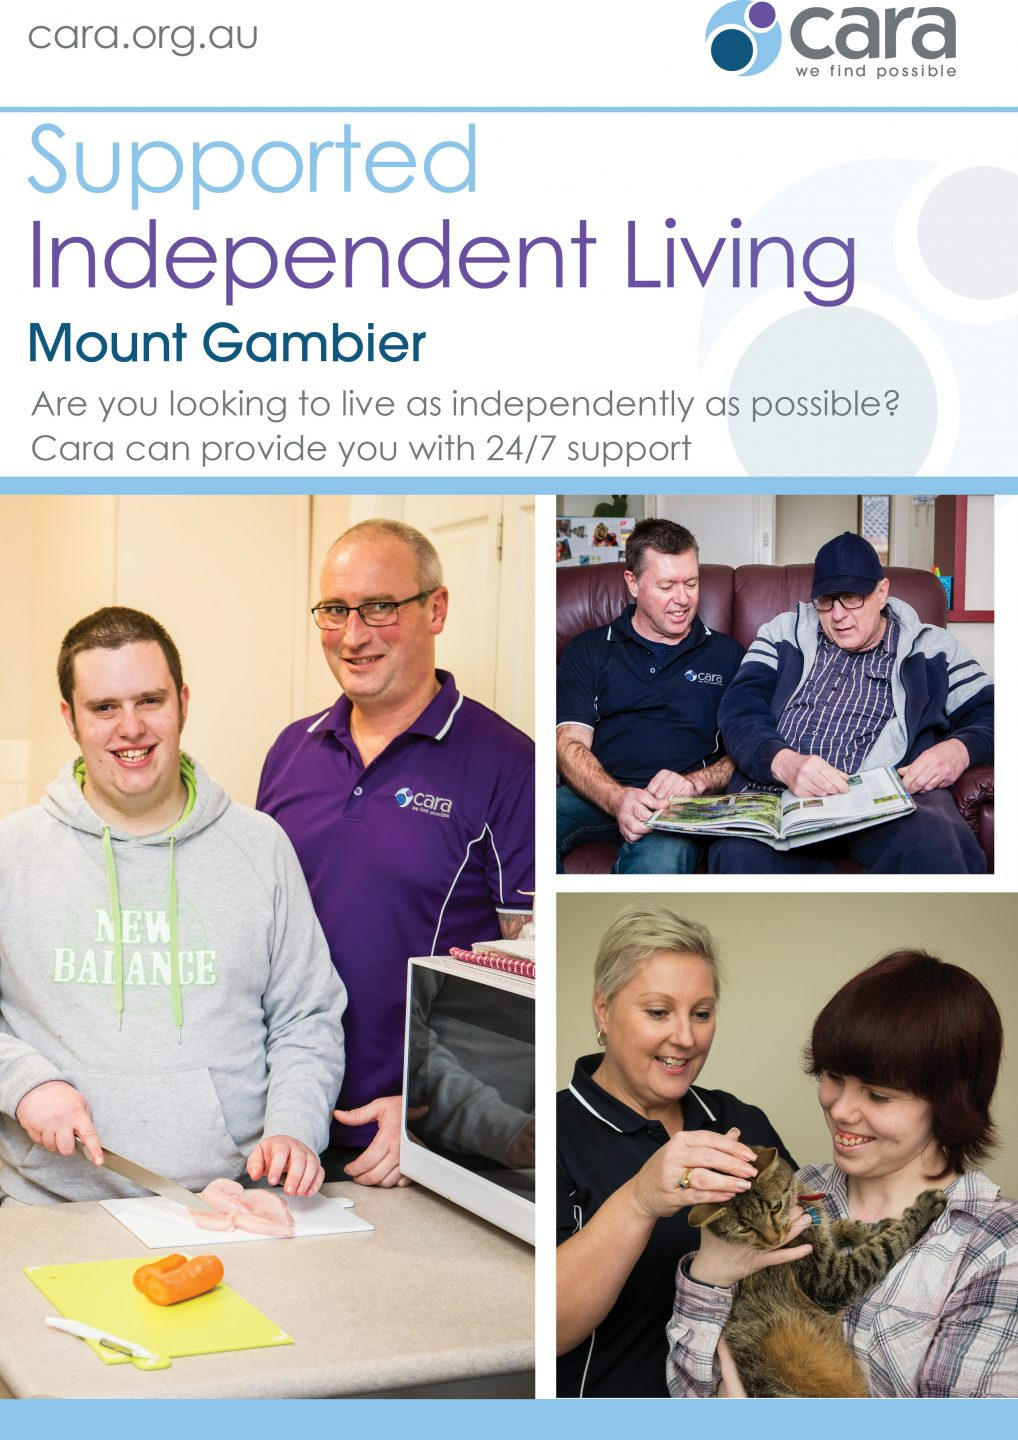 Supported Independent Living - Mount Gambier